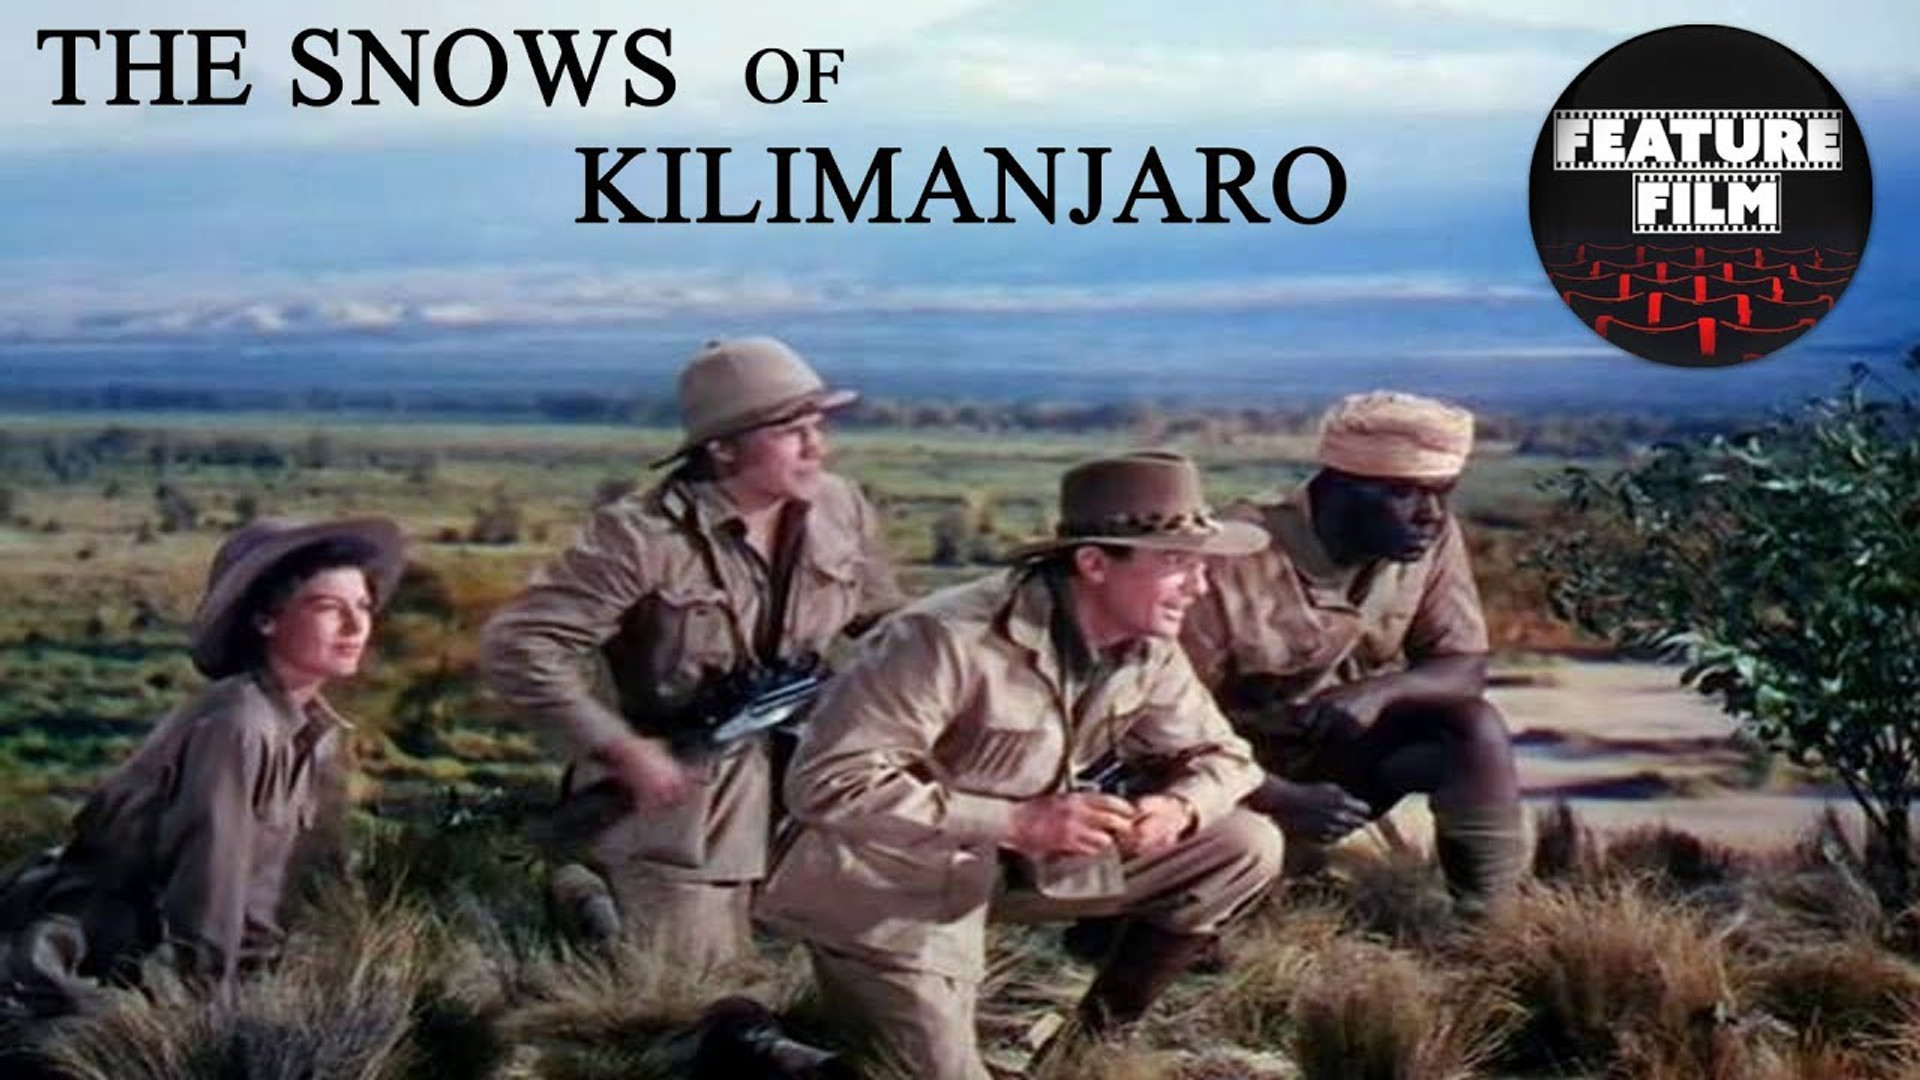 """The Snows of Kilimanjarois a 1952 American technicolor film based on the short story of a similar title by Ernest Hemingway.The story centers on the memories of writer Gregory Peck who is taking a safari in Africa. There, he is wounded by a thorn prick, and suffering from gangrene, he lies awaiting death. This causes him to look back at his memories of the past years, and how little he has actually accomplished in his writing. Both Hemingway's and King's iterations explore the political landscape of America and Africa during their times in the guise of the literary conflict of man vs. nature.  Today, the snows of Mount Kilimanjaro, the highest mountain in Africa, whose western summit is called the """"House of God"""" continues to recede due to climate change."""